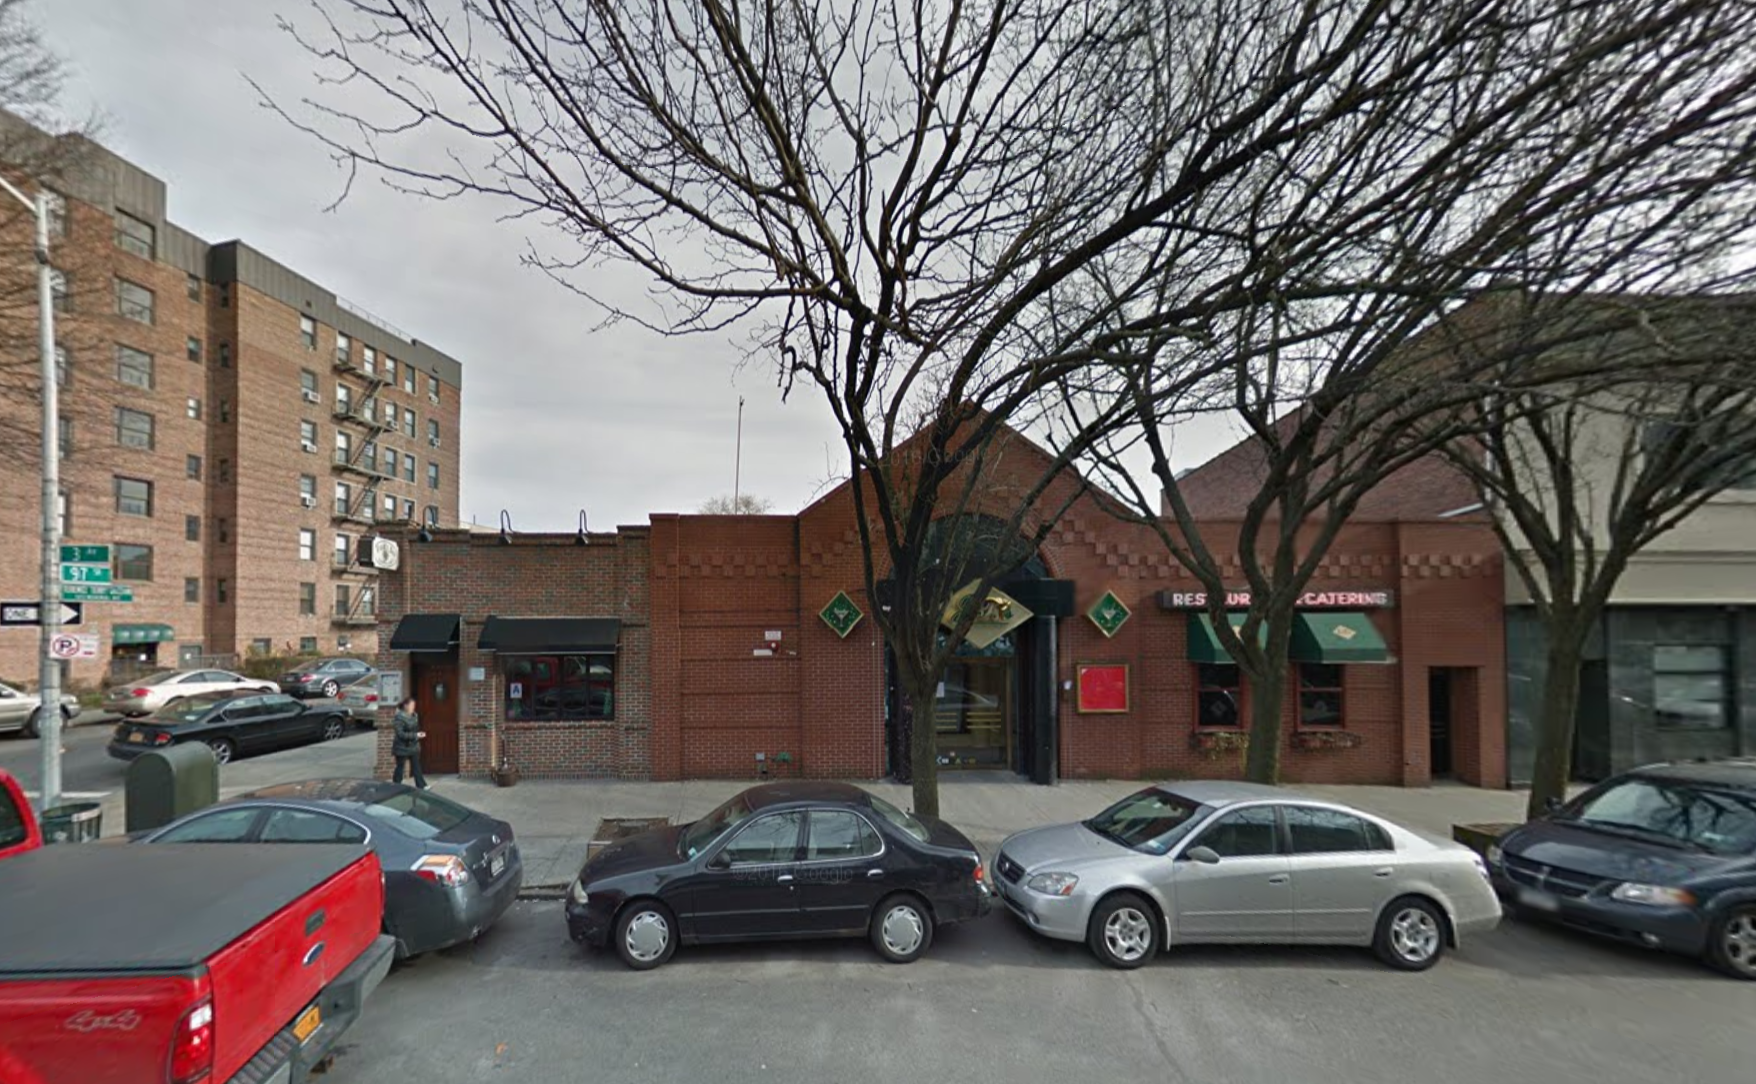 9701 Third Avenue, image via Google Maps